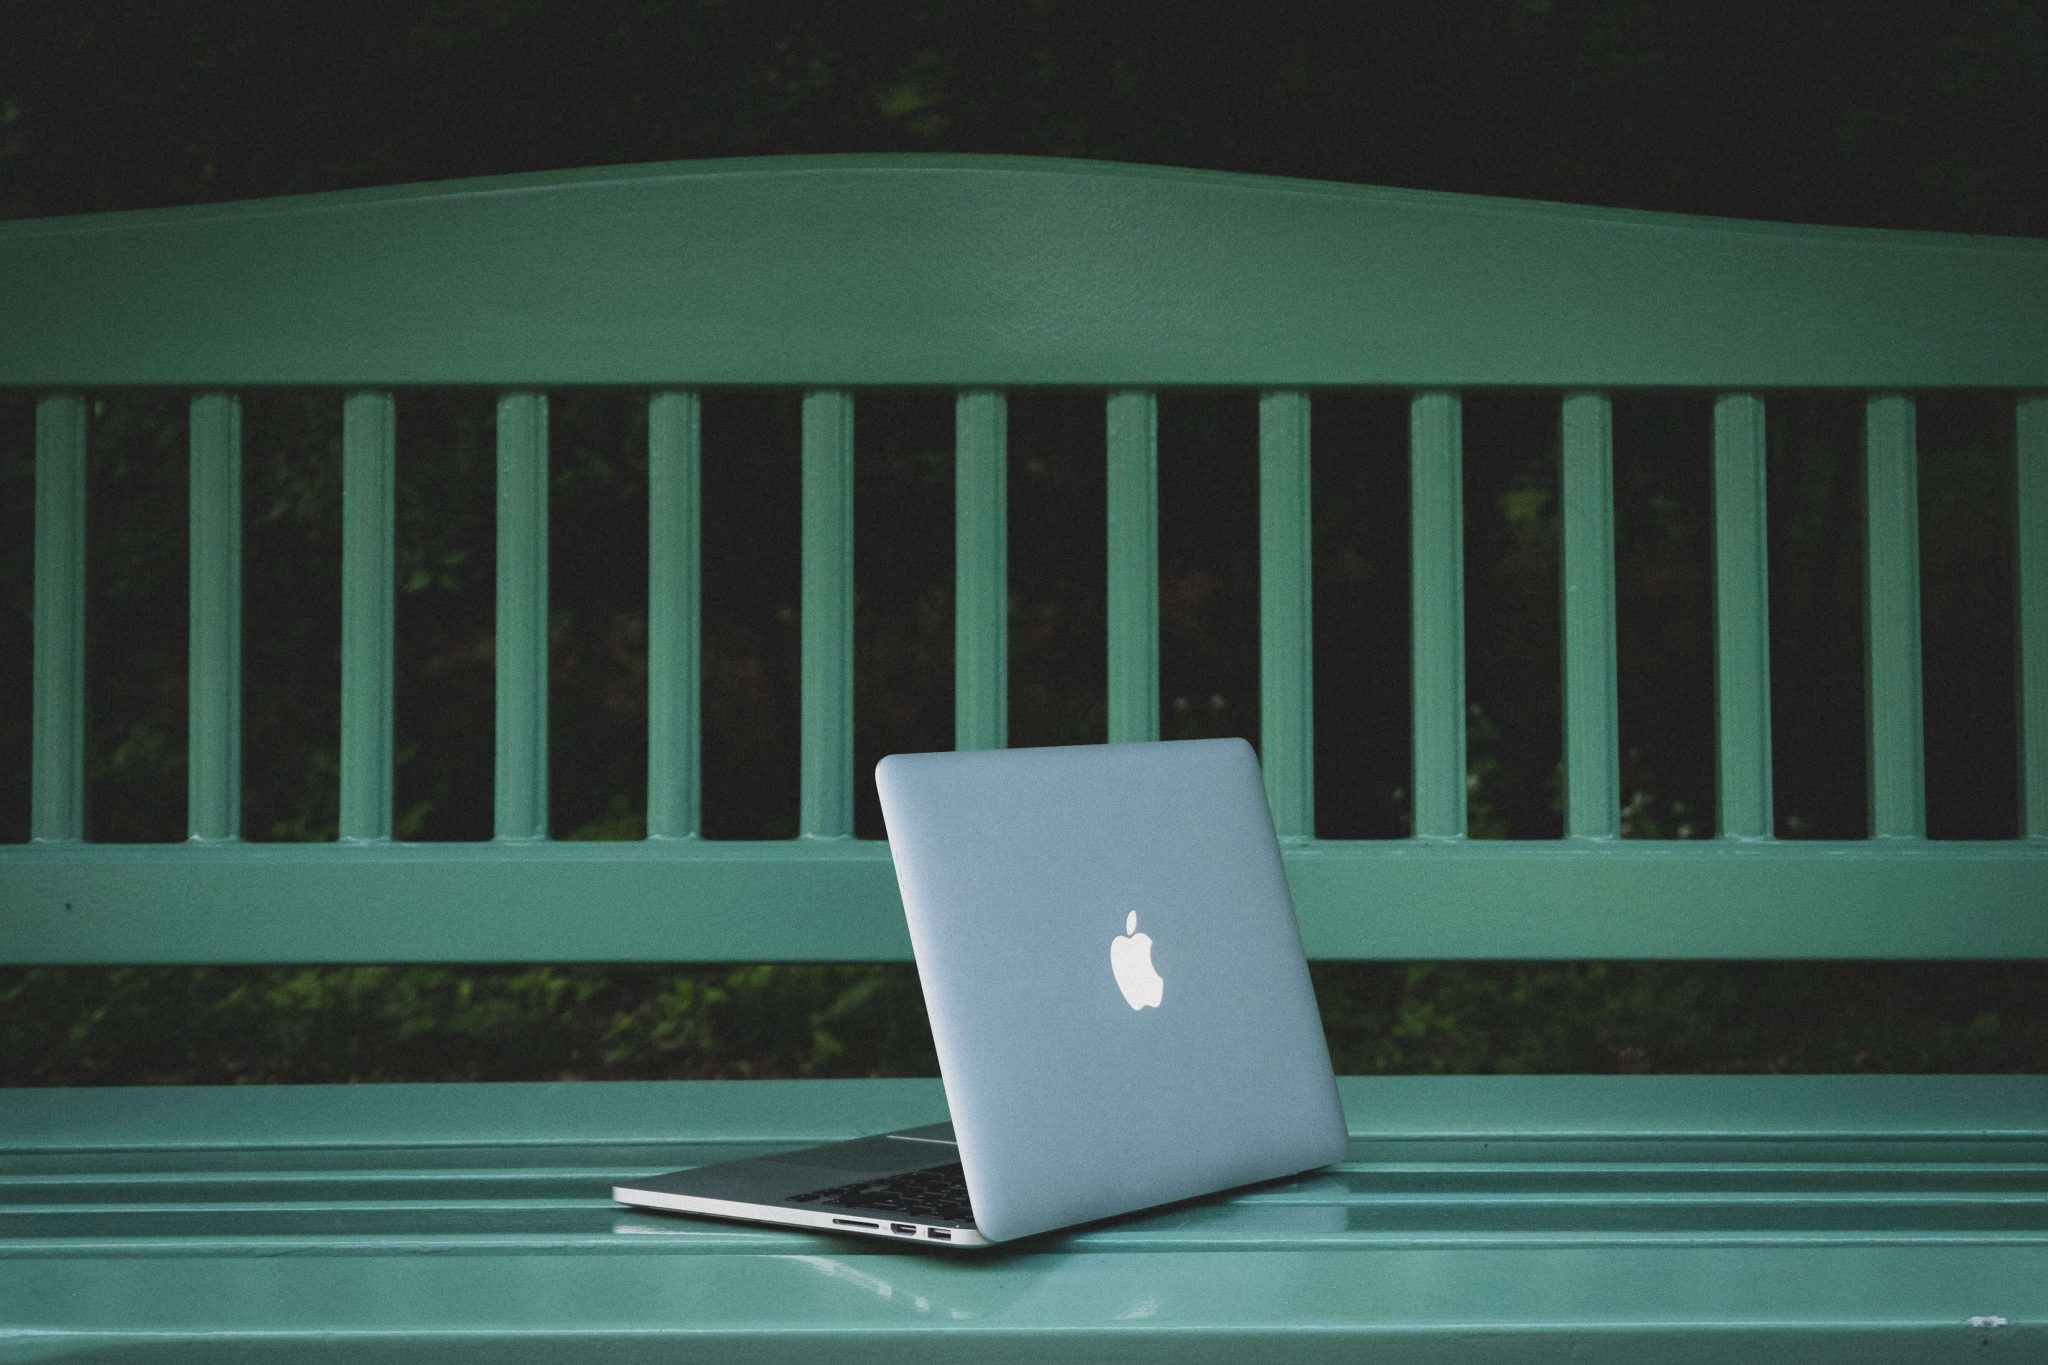 laptop in a green bench